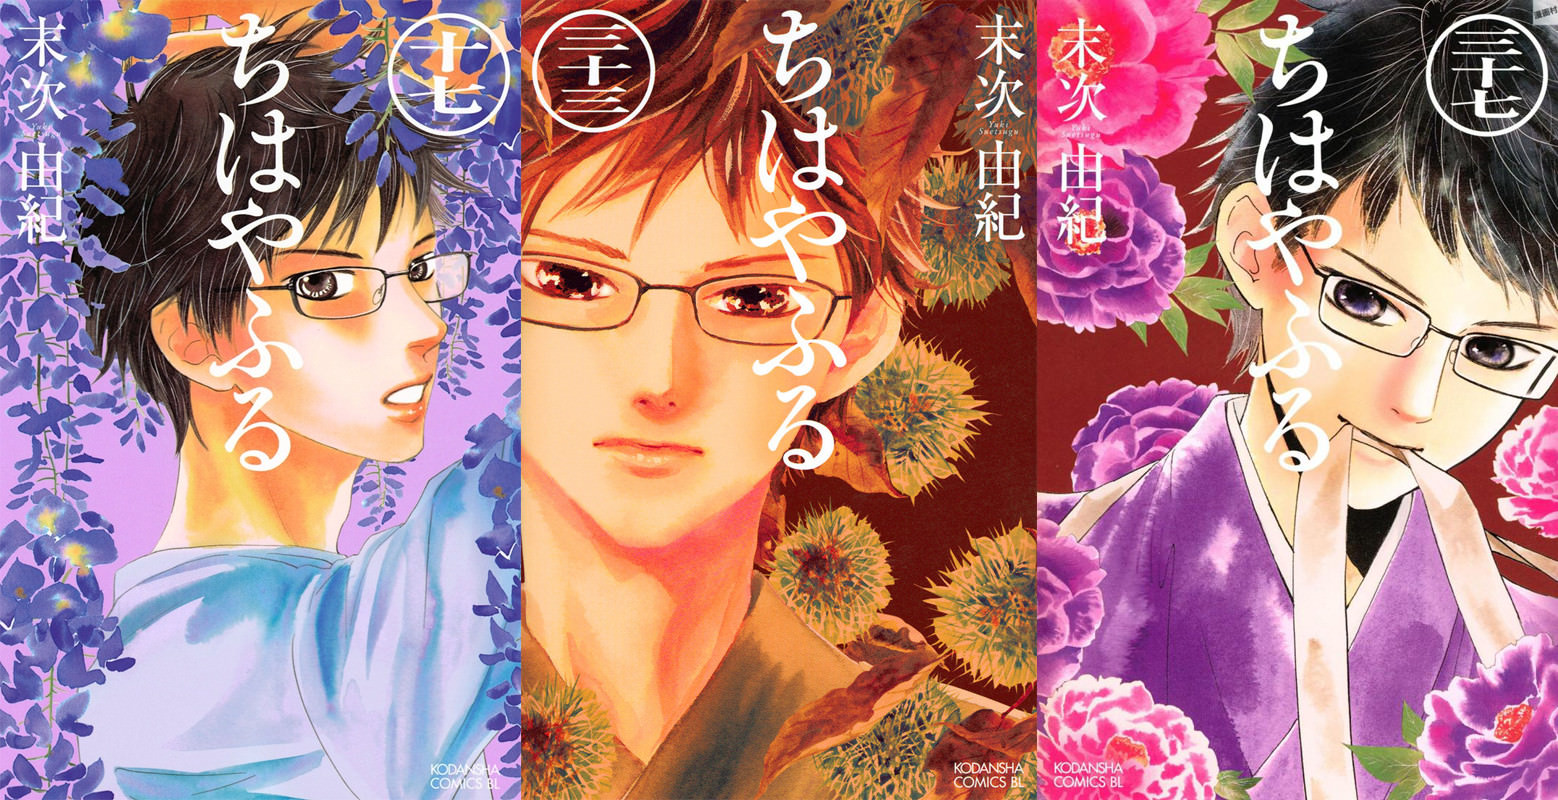 77e46011969e It s probably just me but Arata looks more handsome in the cover pictures  than in the manga.